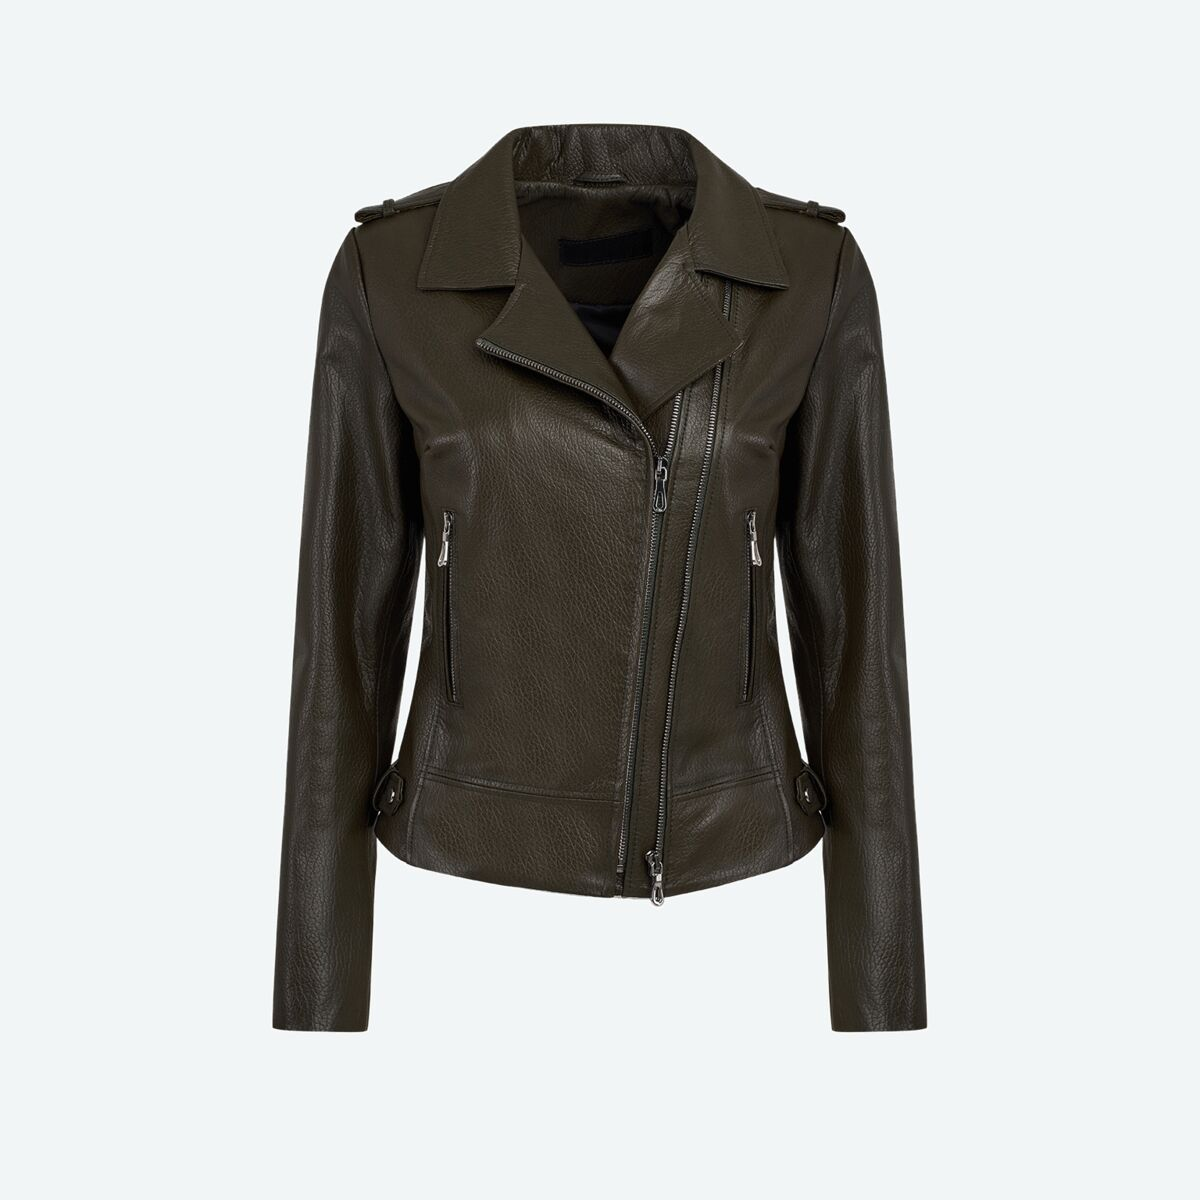 Women's Leather Biker Jacket - Olive Green